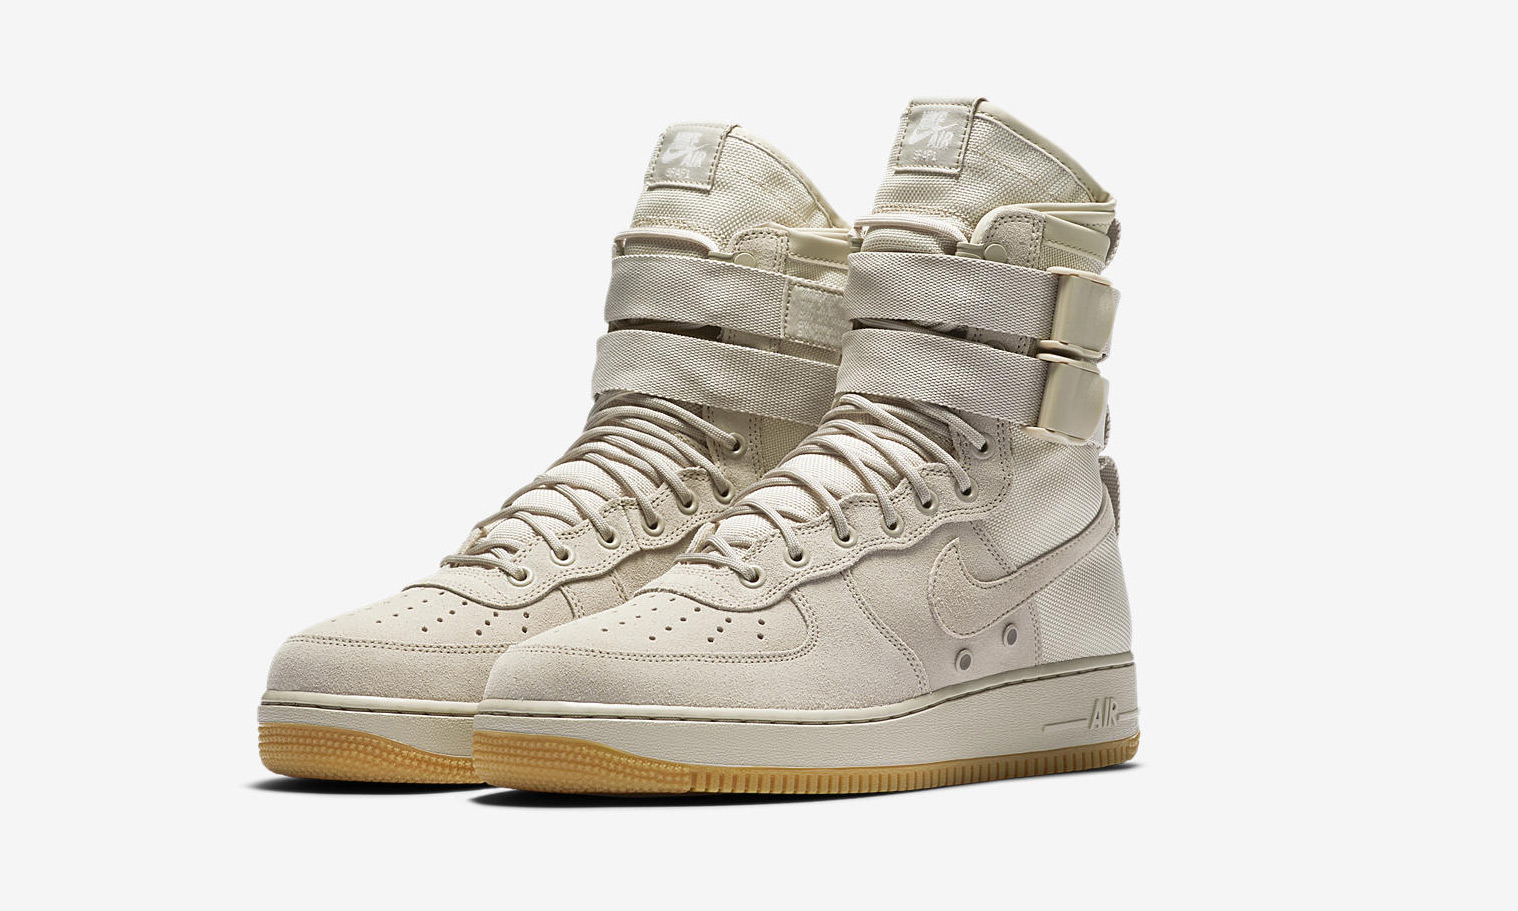 nike-special-forces-air-force-1-new-colors-1